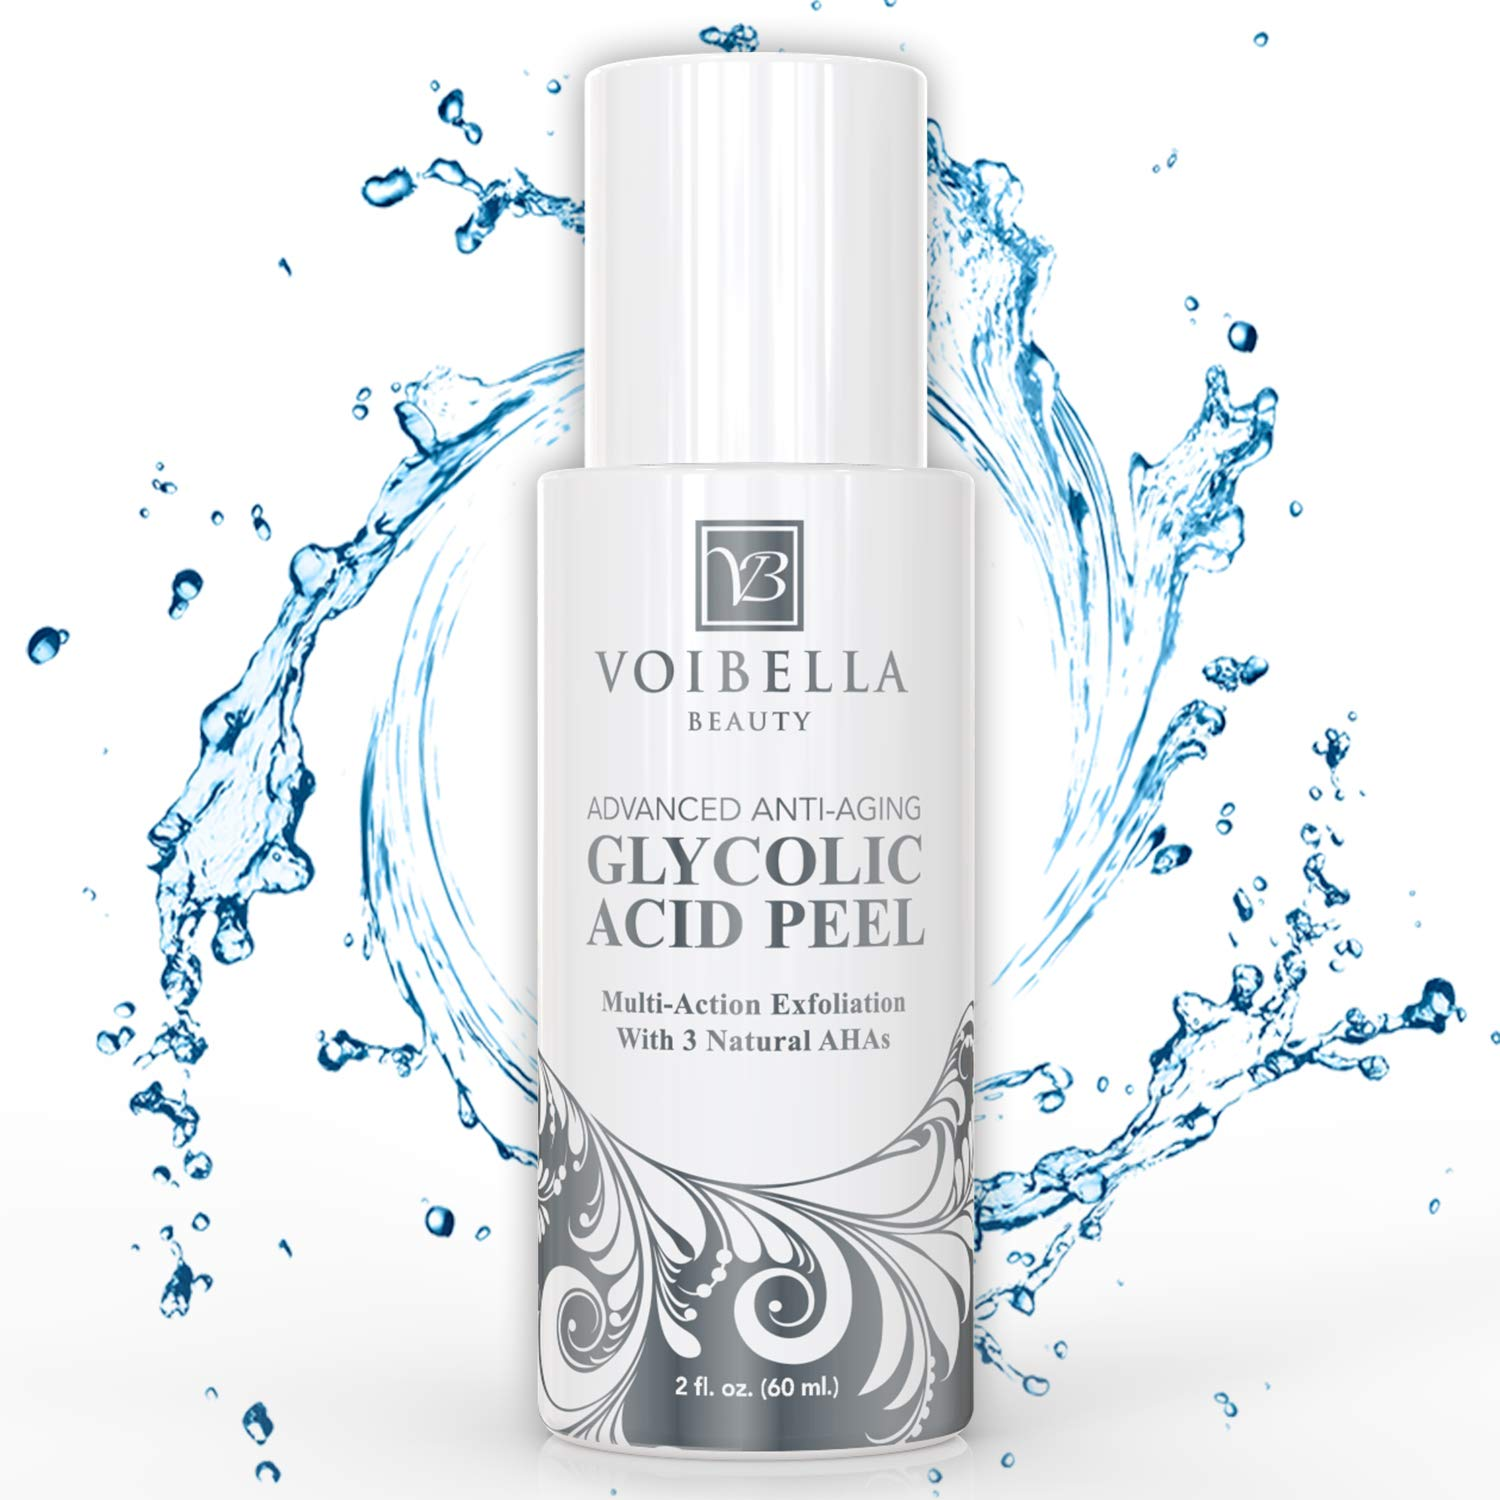 Glycolic Acid Peel & Facial Exfoliator with Lactic Acid and Pyruvic Fruit Acid (AHA) - Anti-Aging Chemical Peel & Cleanser Mask for Face & Skin Resurfacing, Wrinkles, Brightening & Acne Scar Treatment by Voibella Beauty